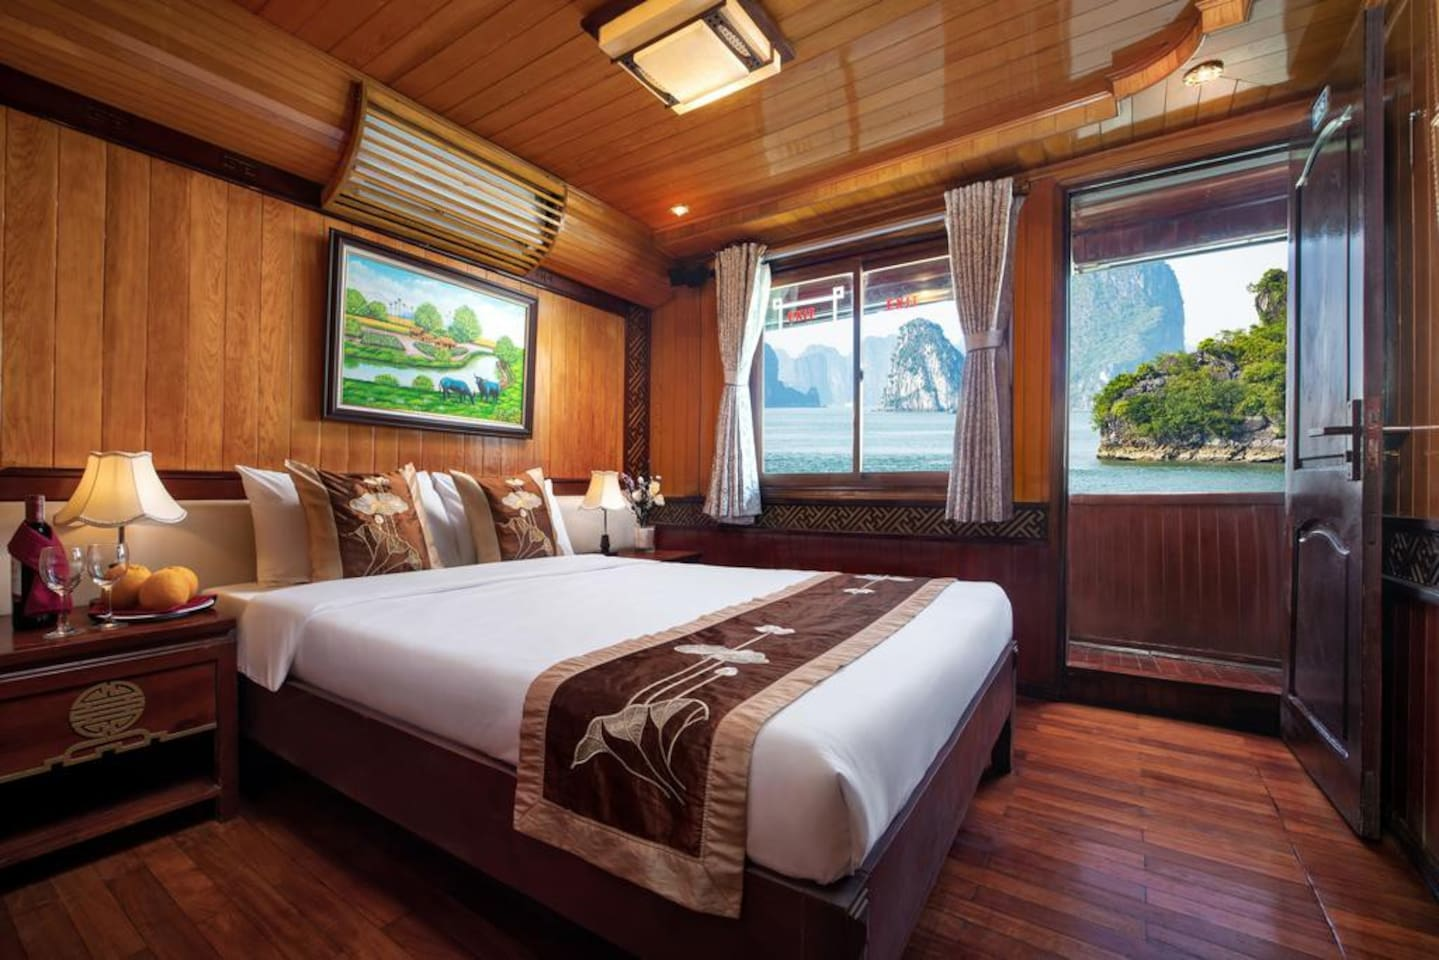 Halong Bay for backpackers